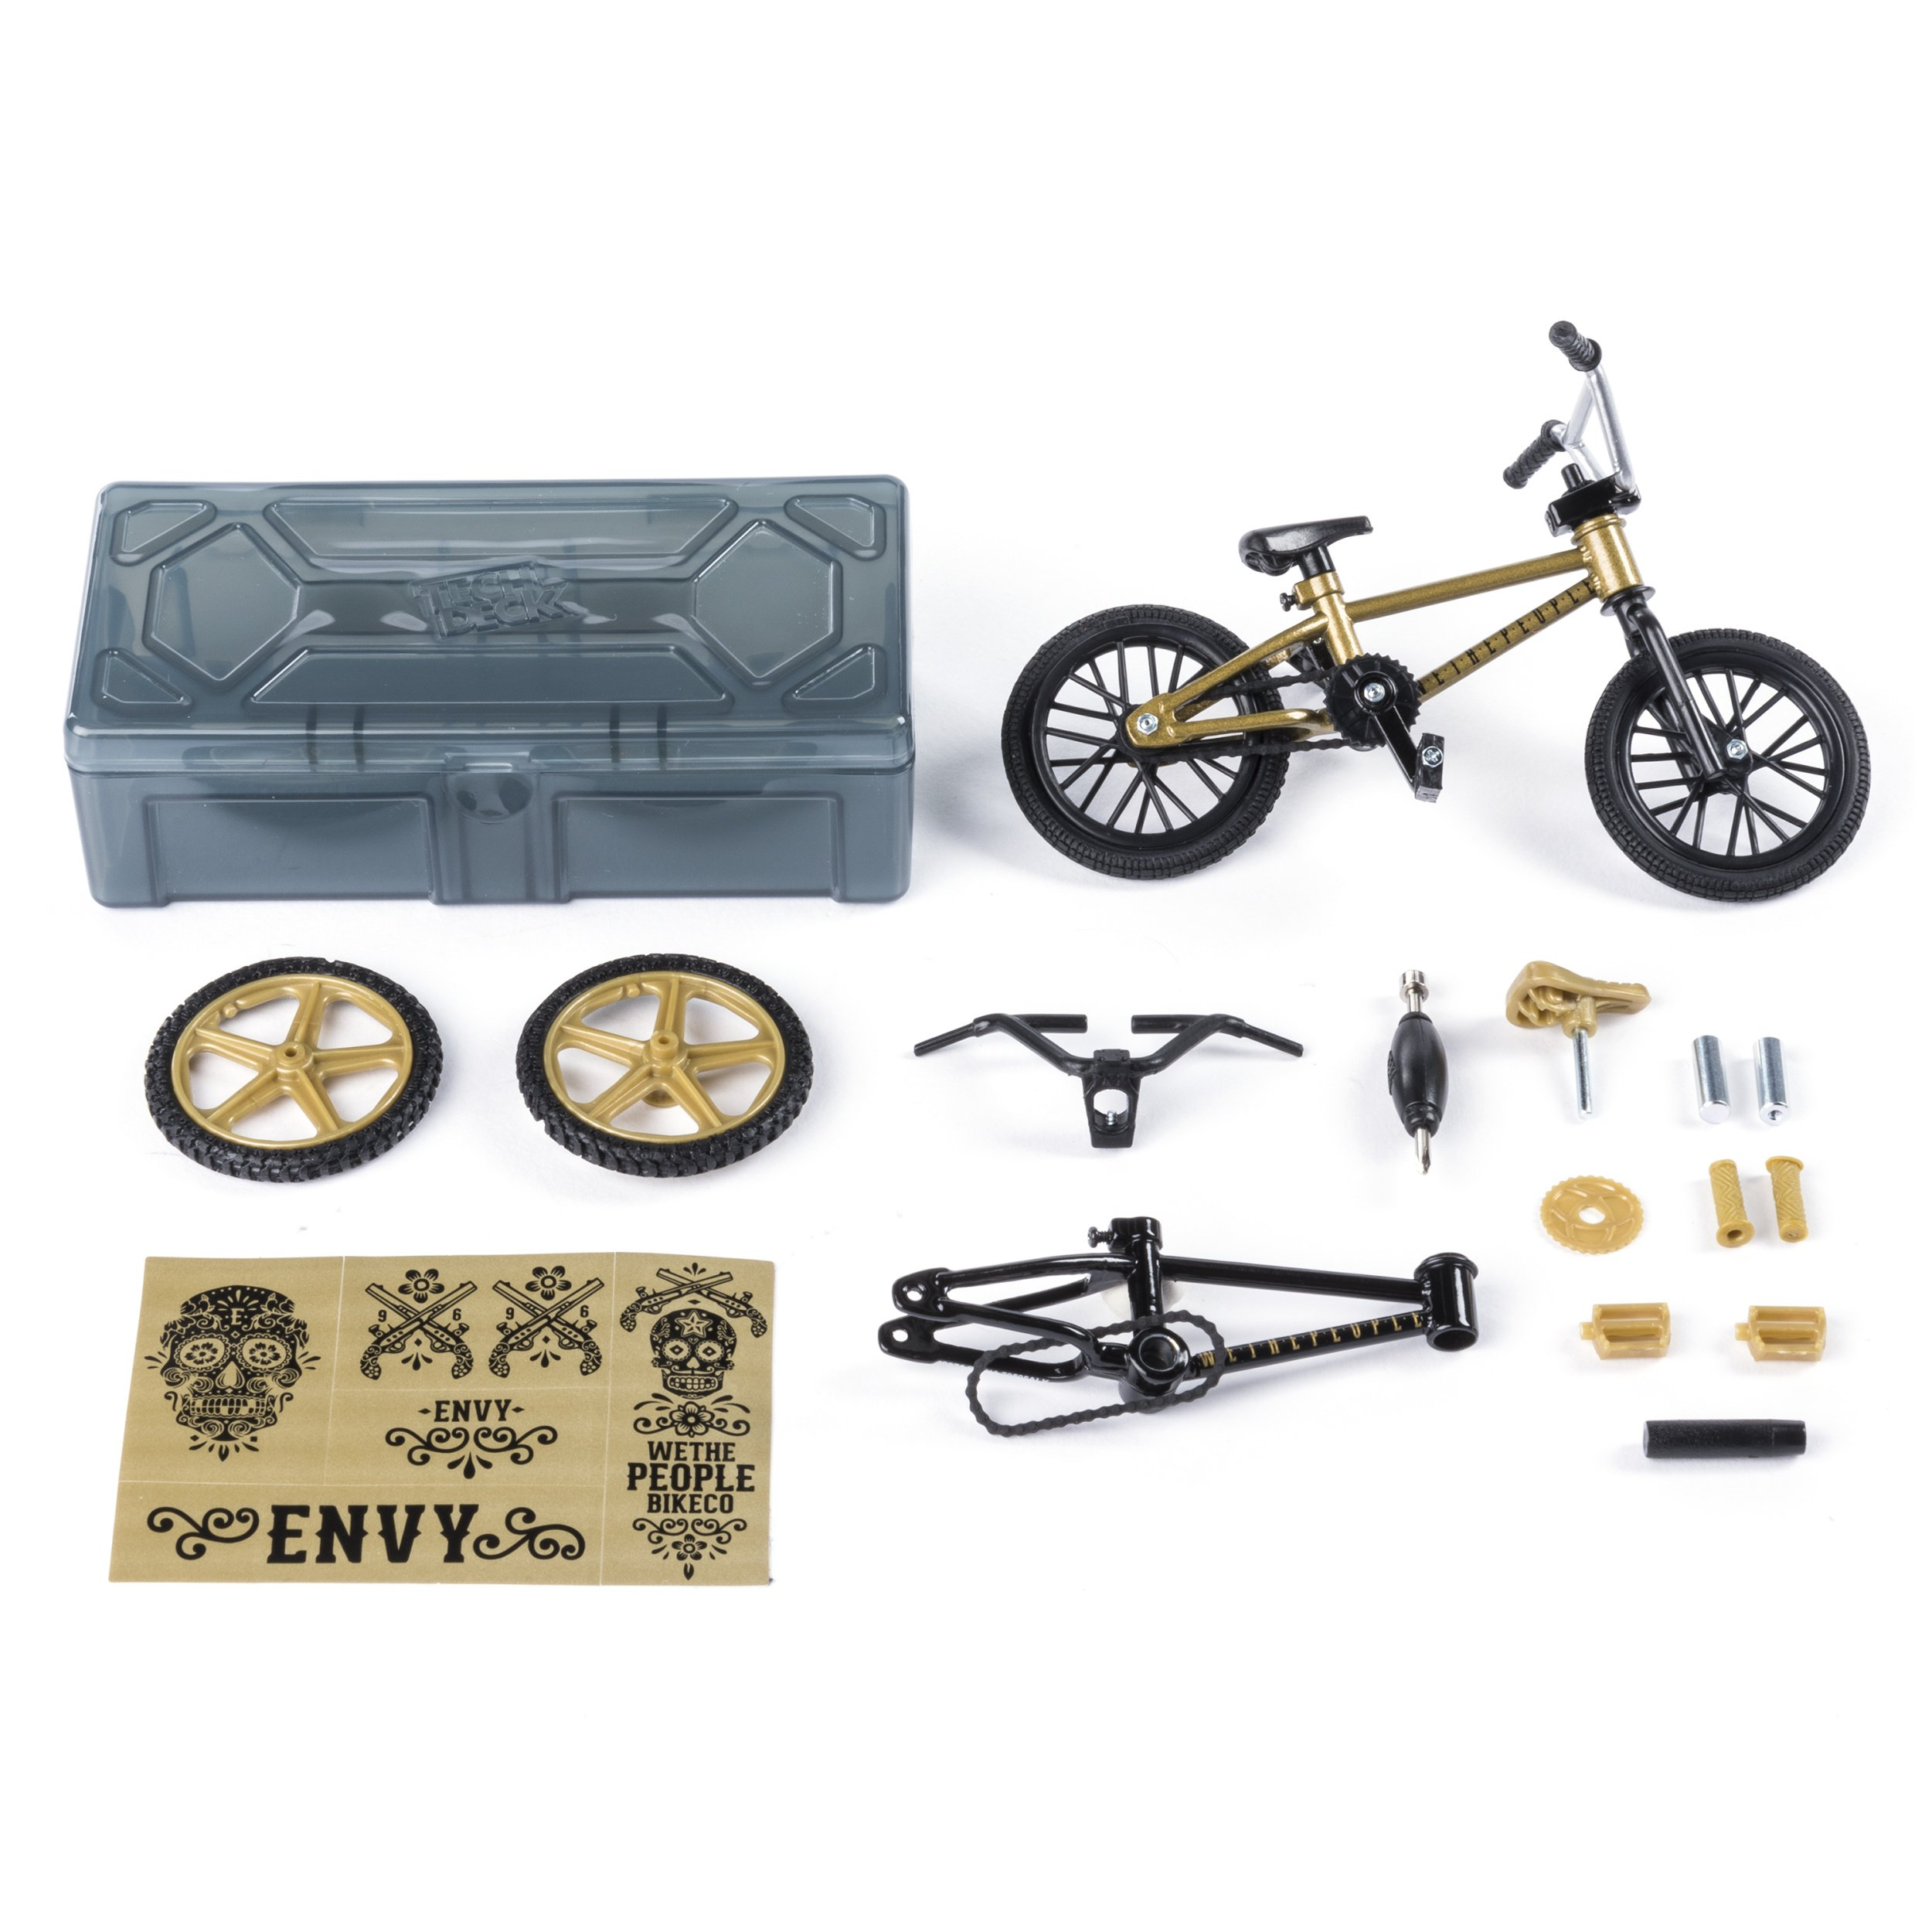 Tech Deck – BMX Bike Shop with Accessories and Storage Container – WeThePeople Bikes – Gold & Black